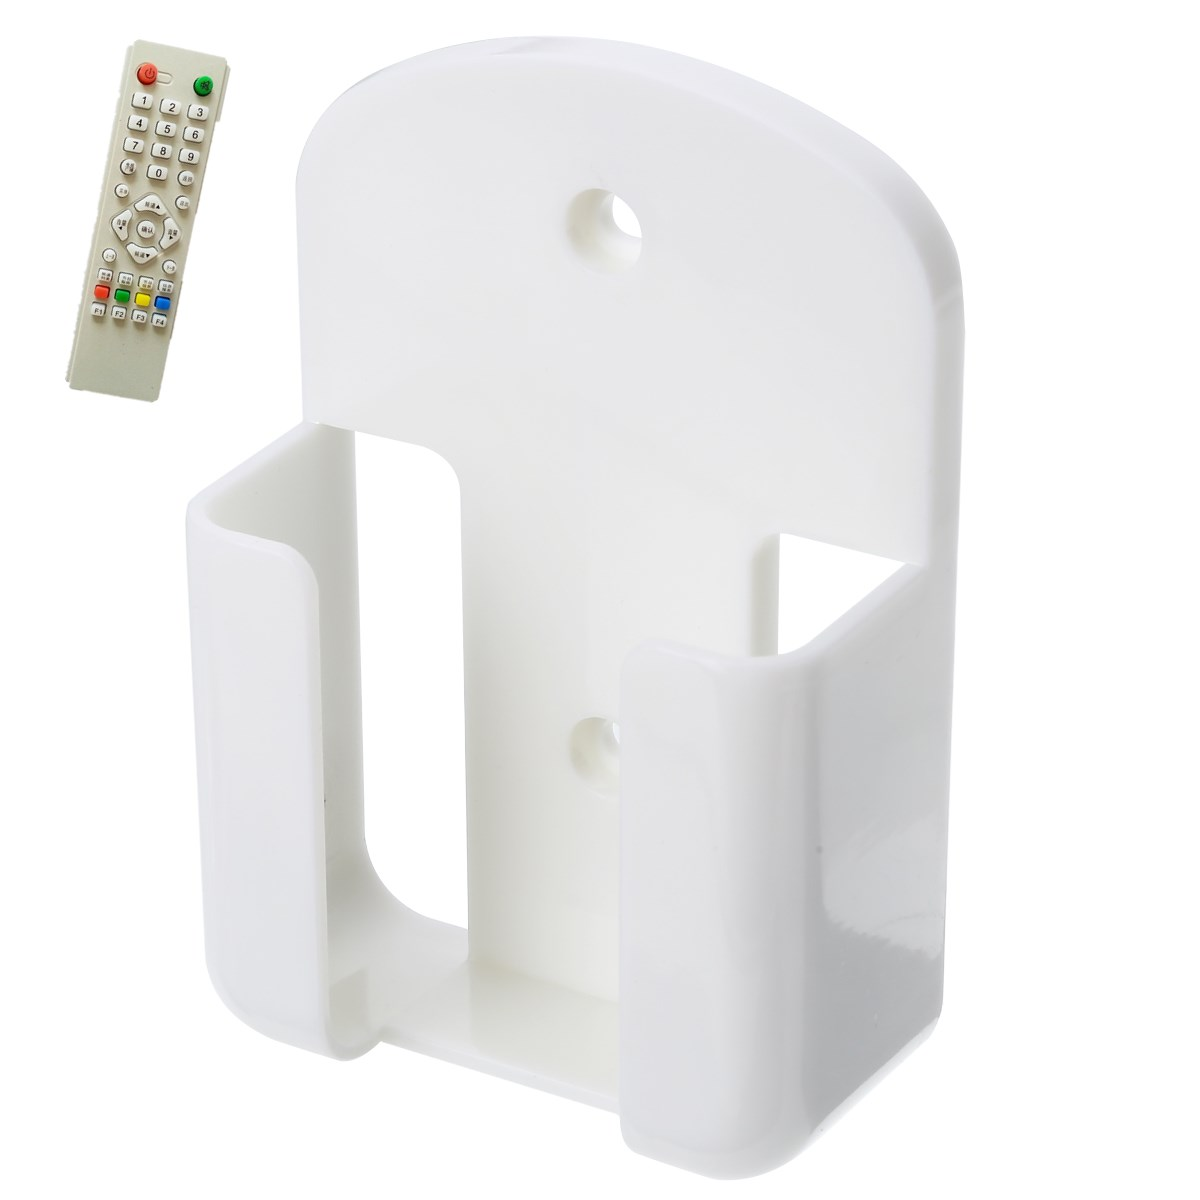 Wall Mounted <font><b>Remote</b></font> Control Storage <font><b>Holder</b></font> Box ABS Wall Hanging Box Home Storage Tool image